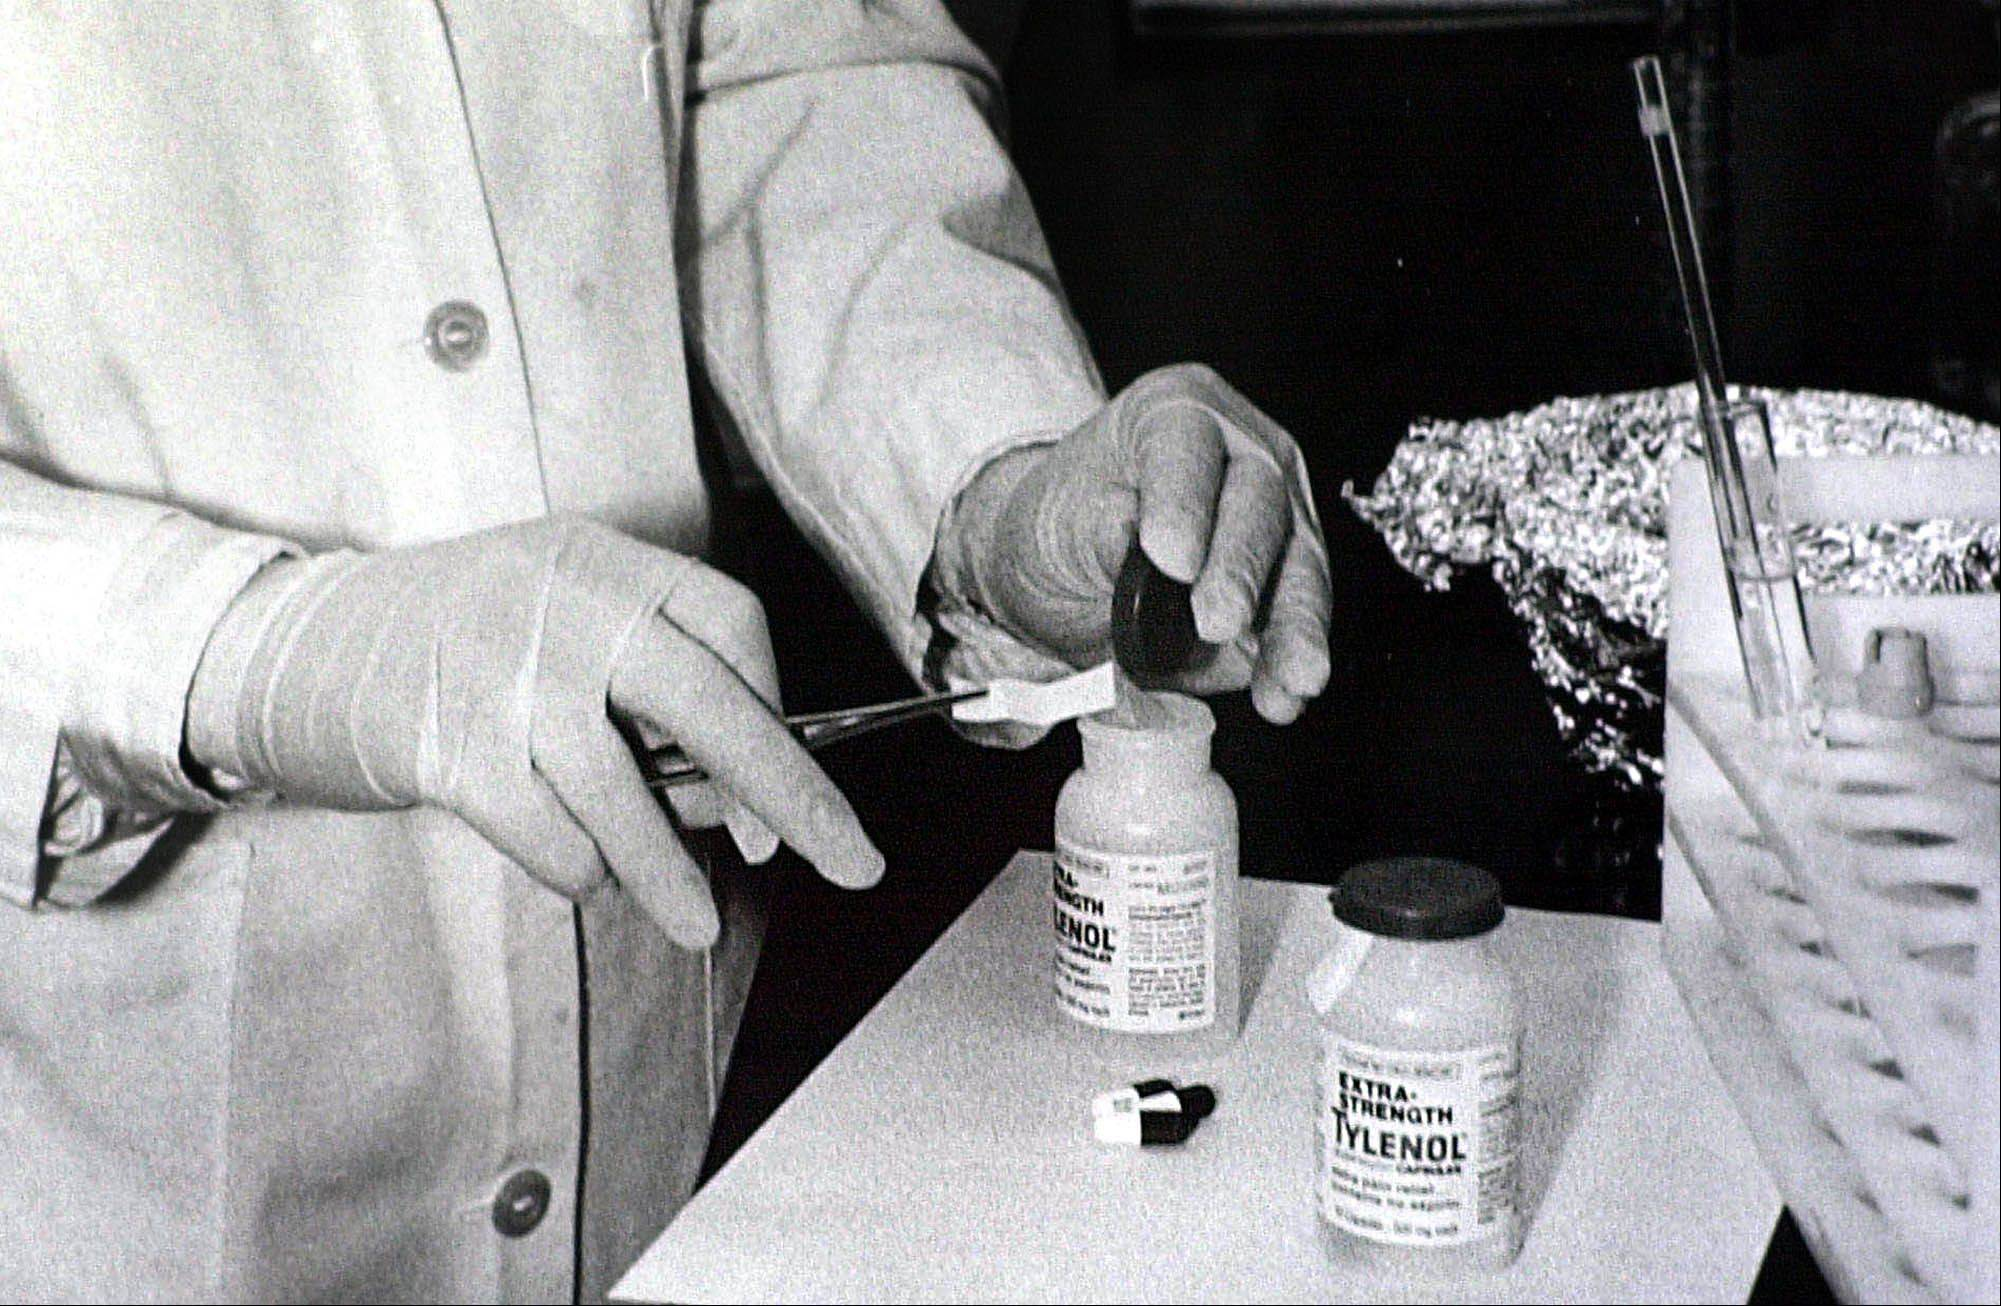 Associated PressBottles of Extra-Strength Tylenol are tested fof cyanide at the Illinois Department of Health in October 1982 in Chicago.